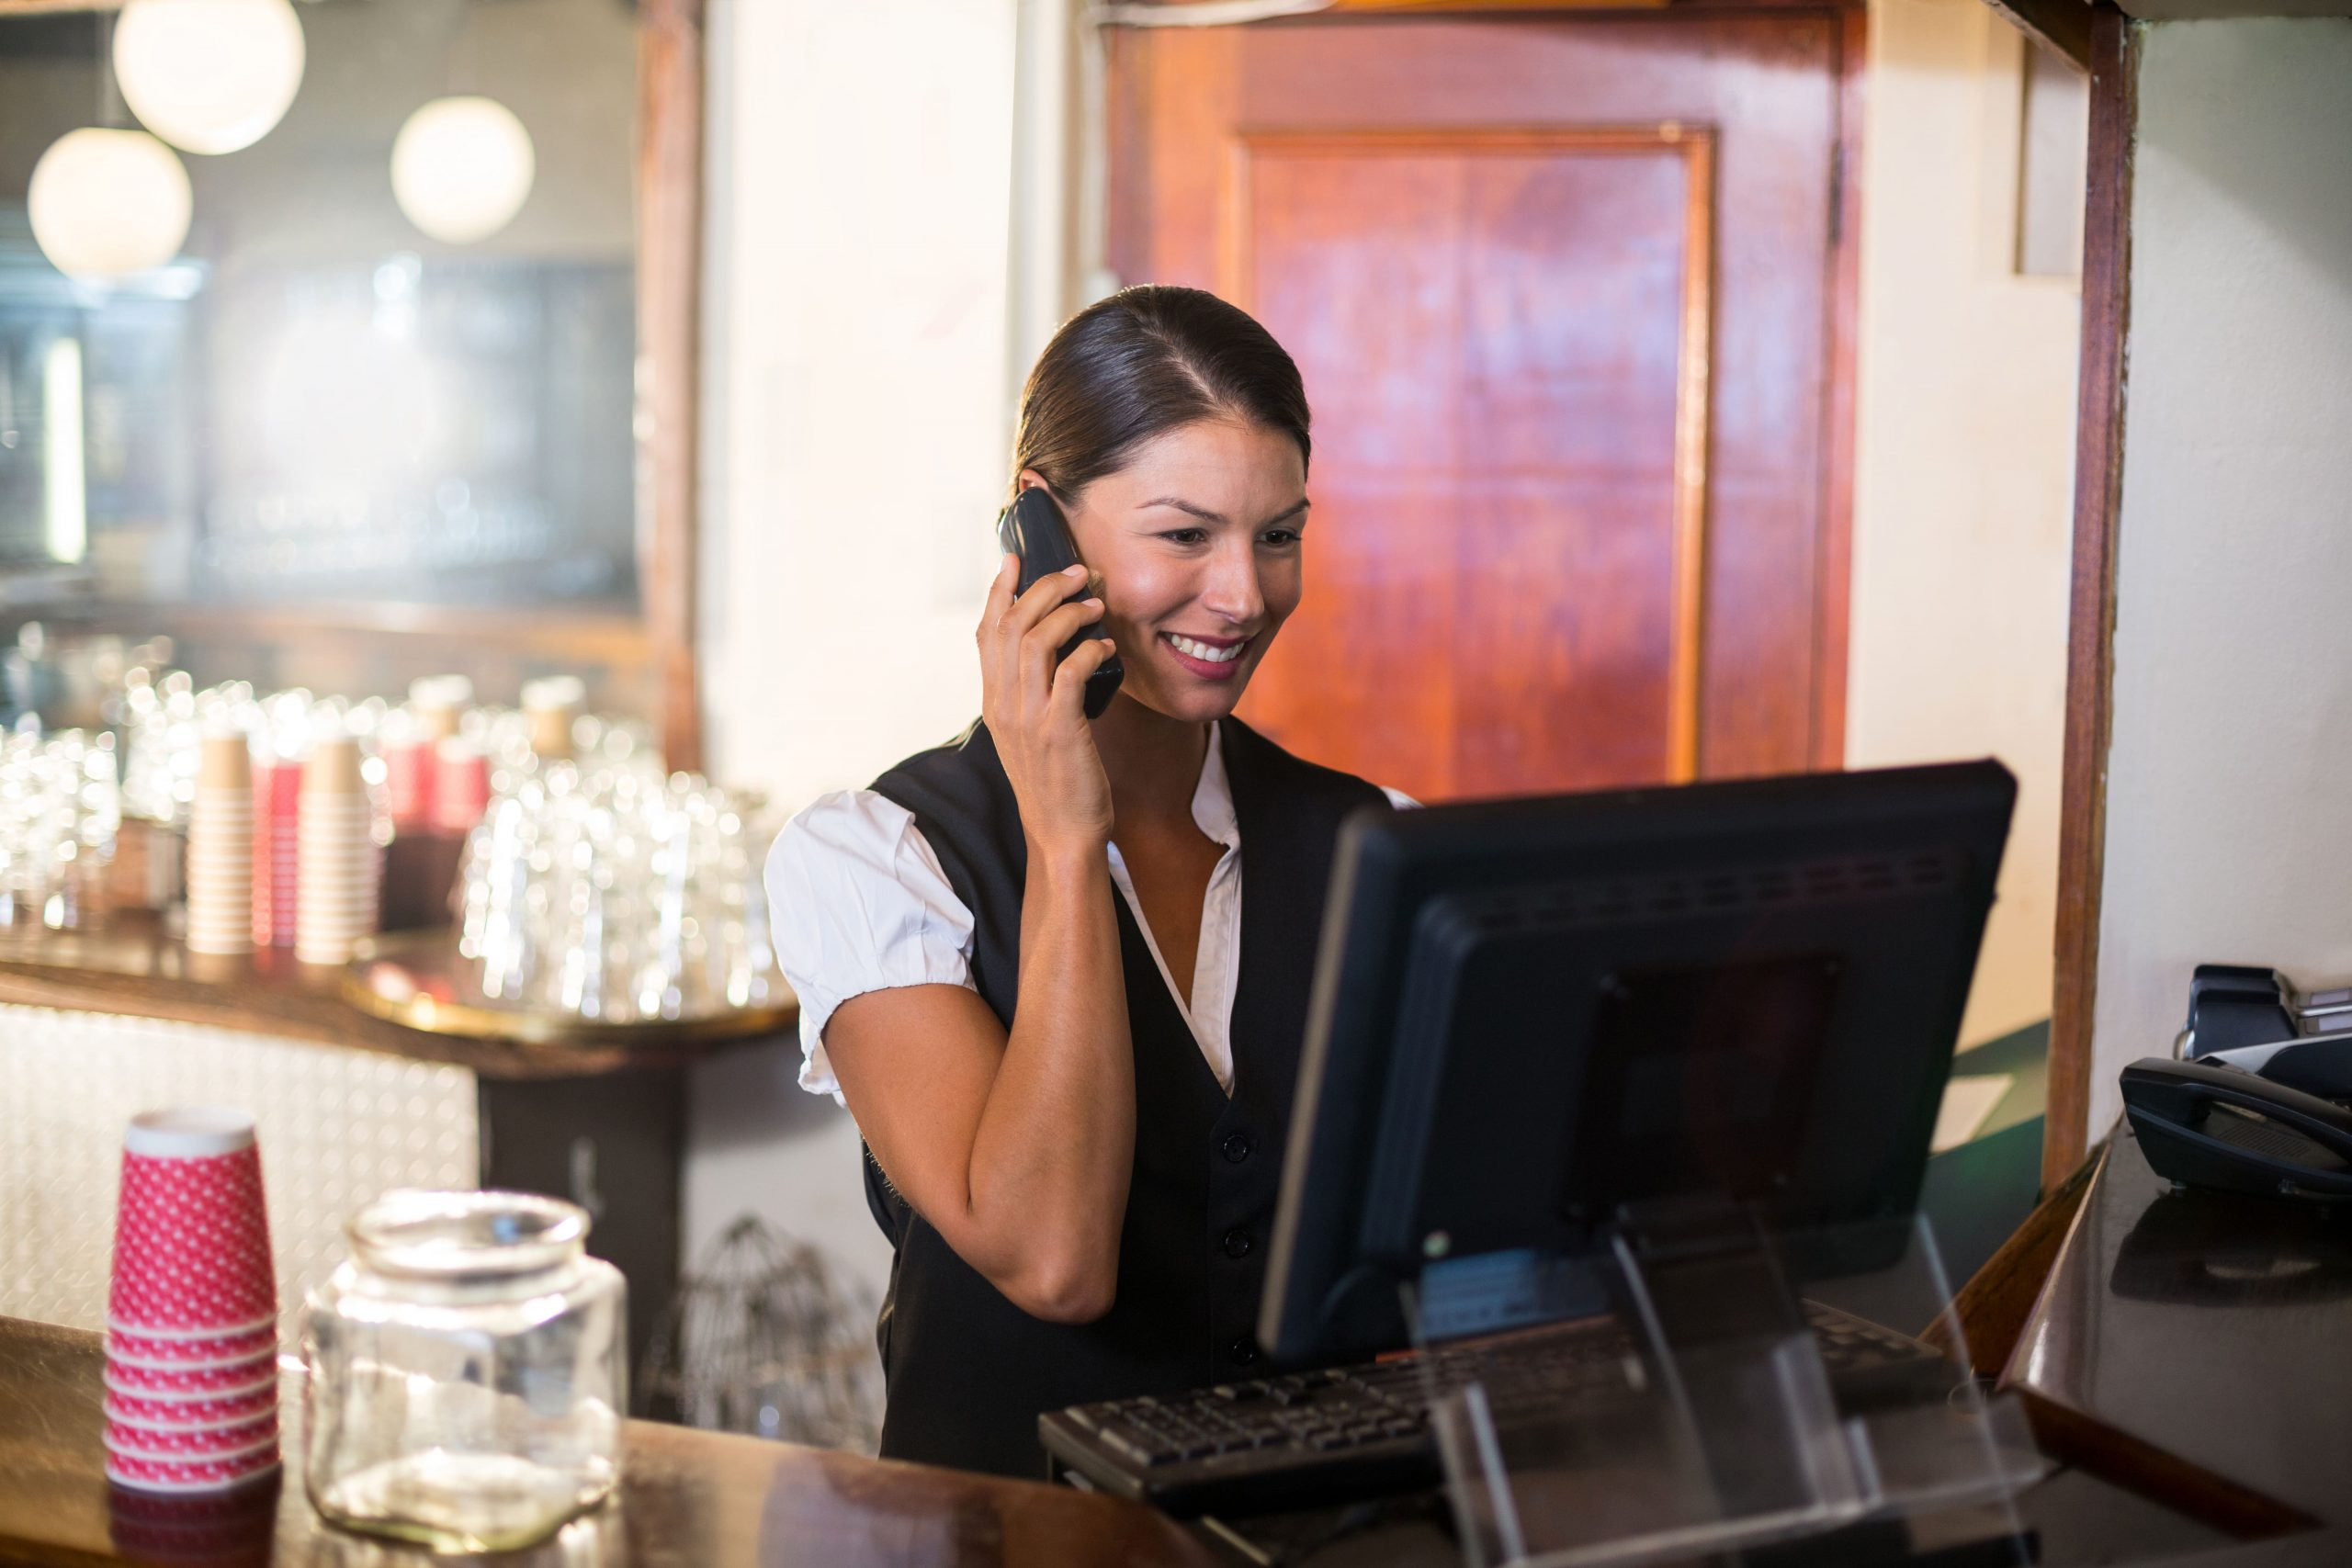 Hospitality Mobile and internet coverage solution Carlton Rising Connection